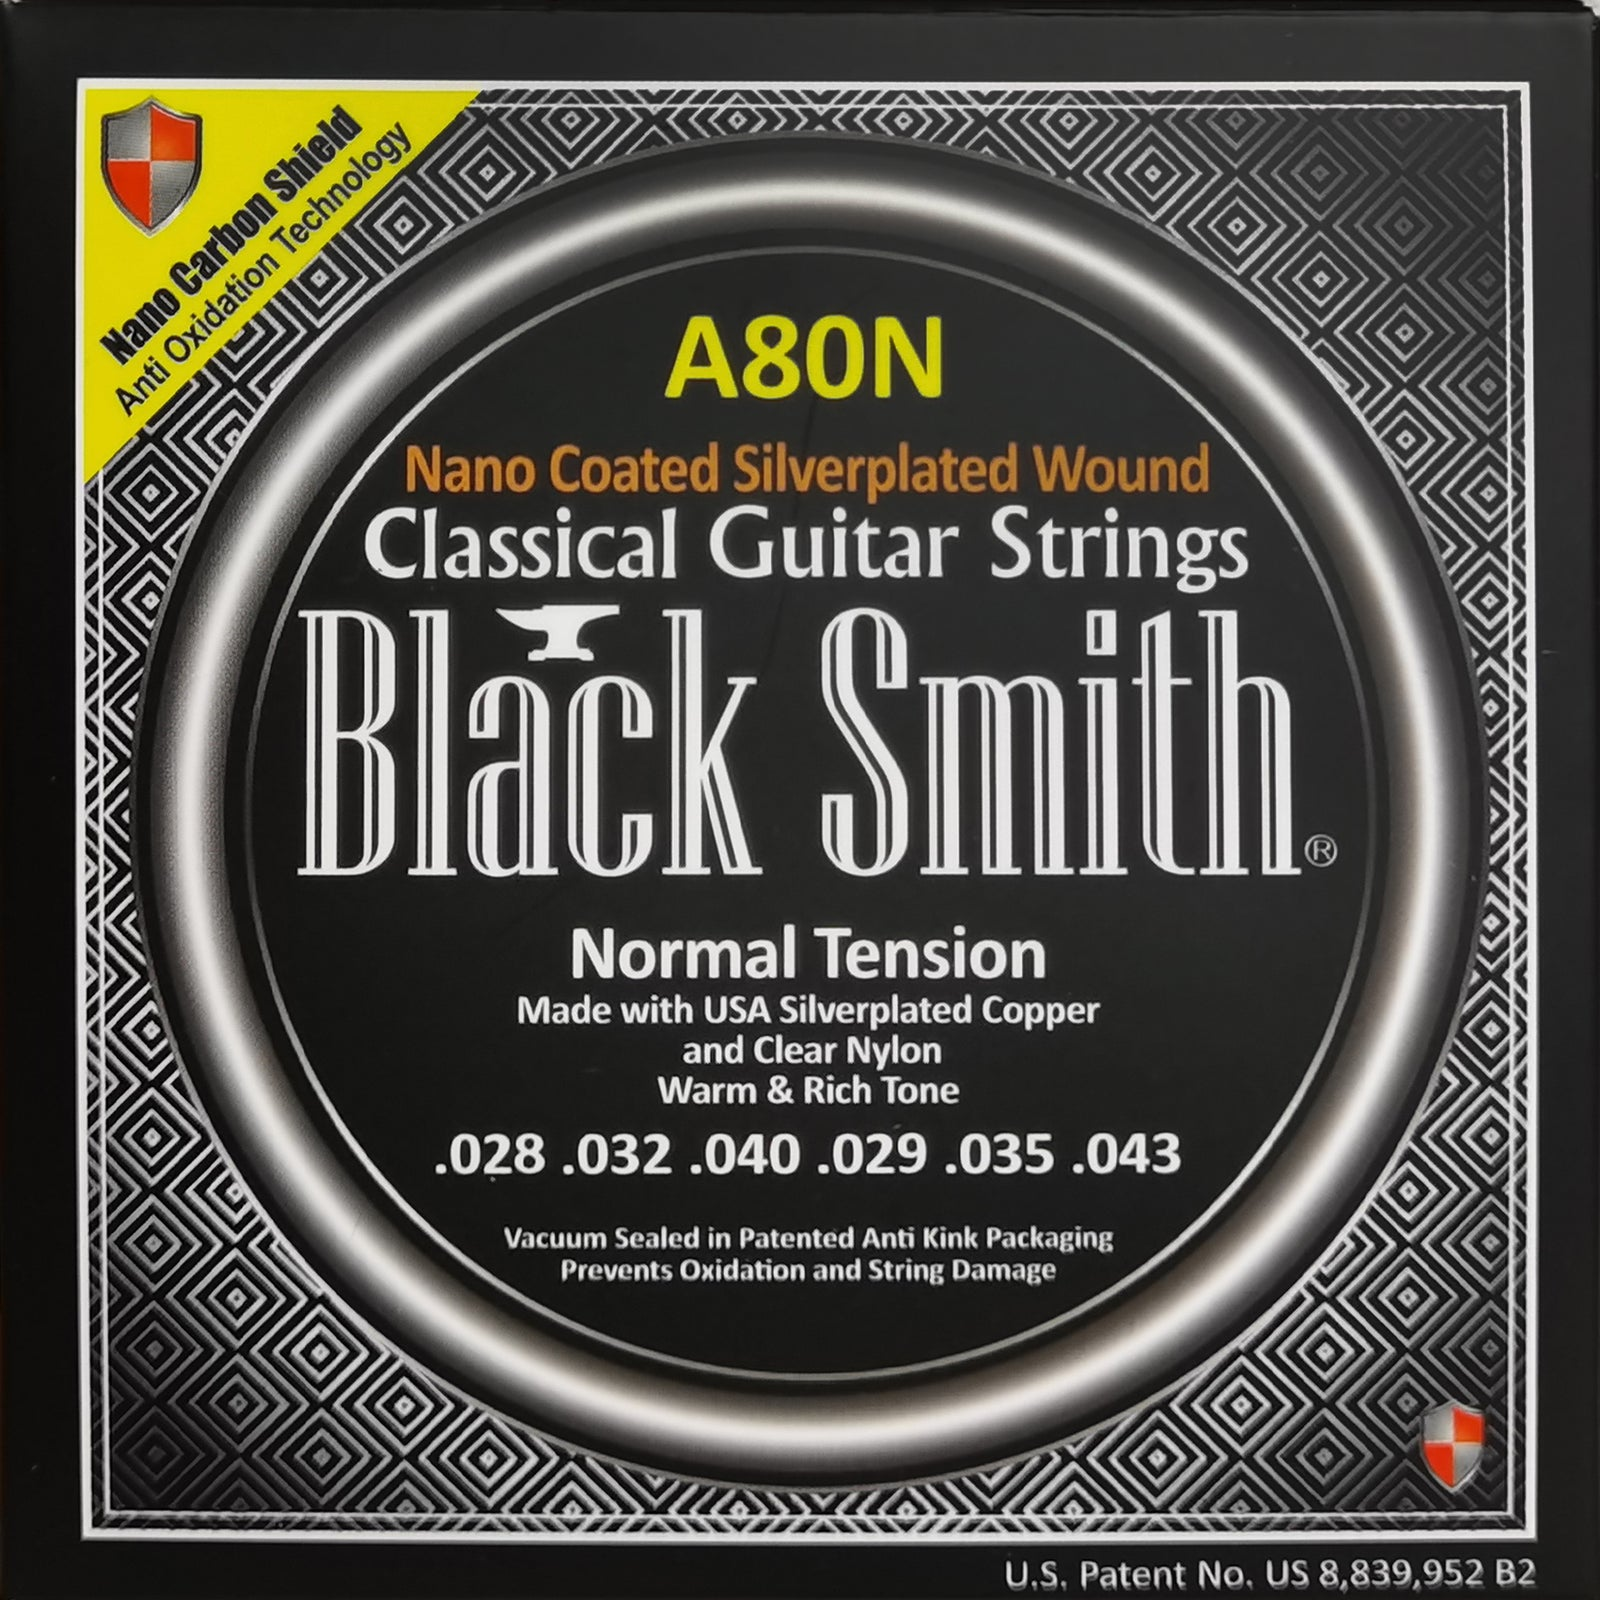 Black Smith A80N Nano Coated Class Gtr String